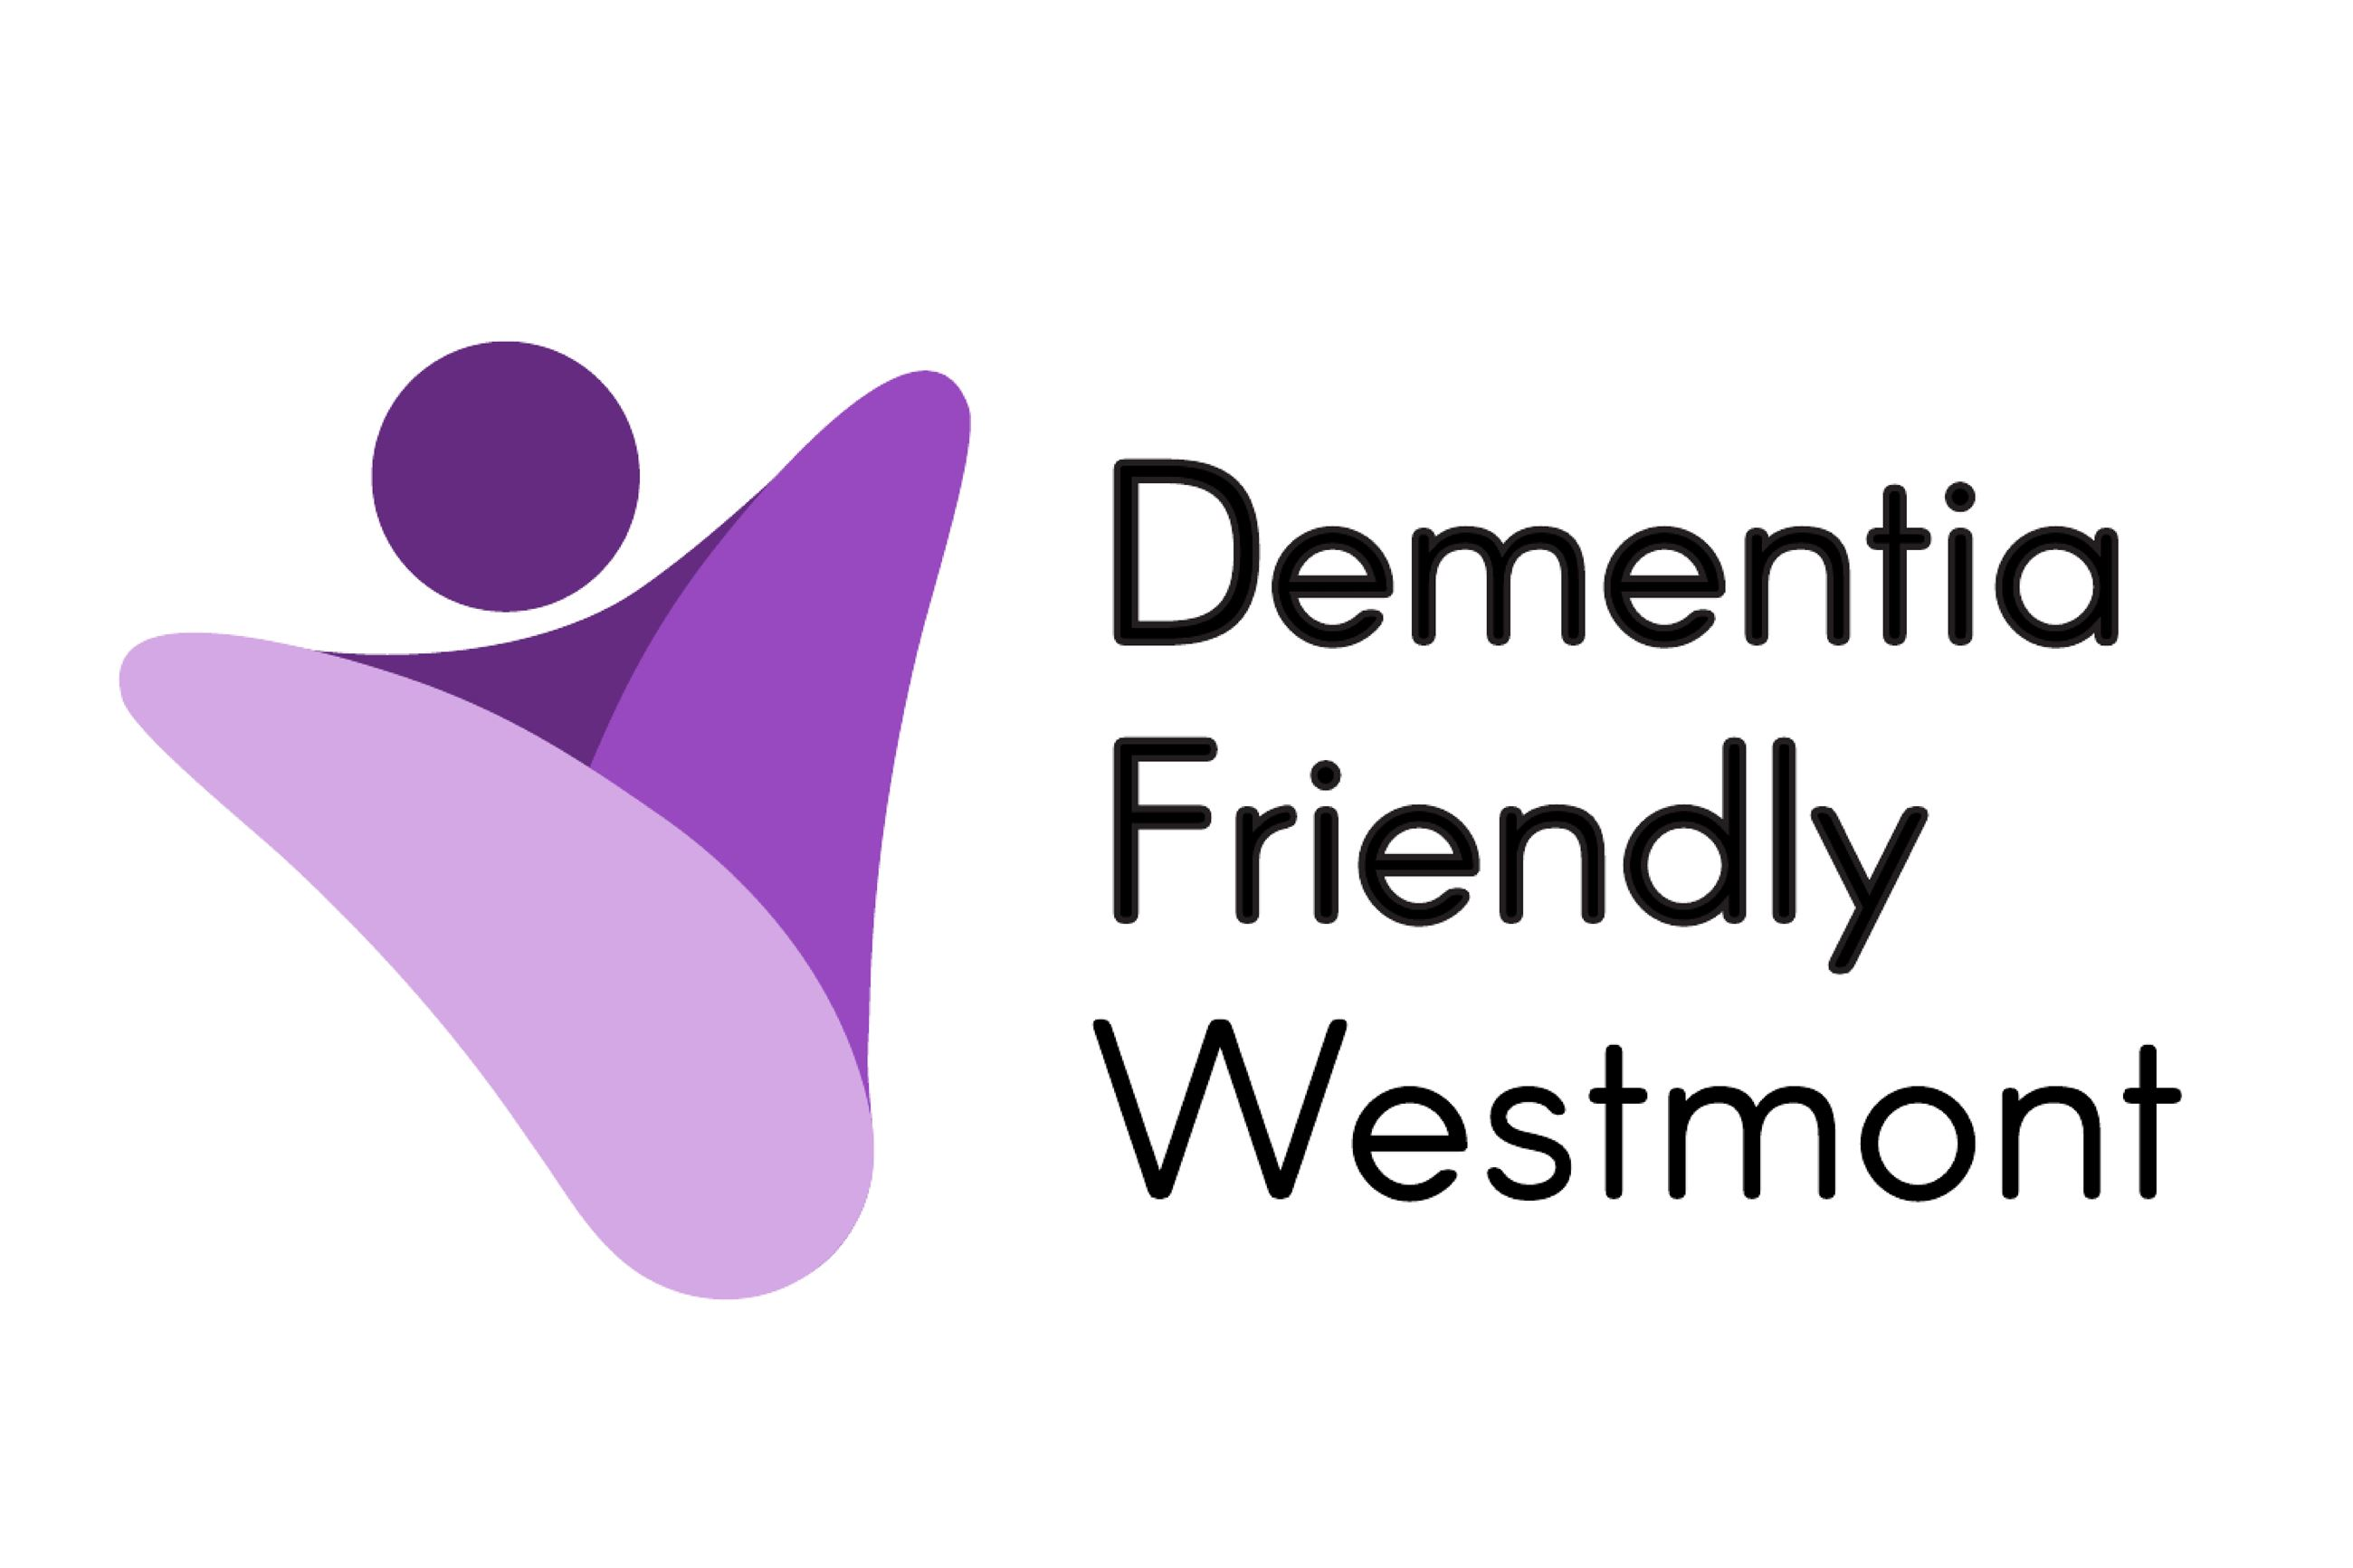 Dementia Friendly Westmont